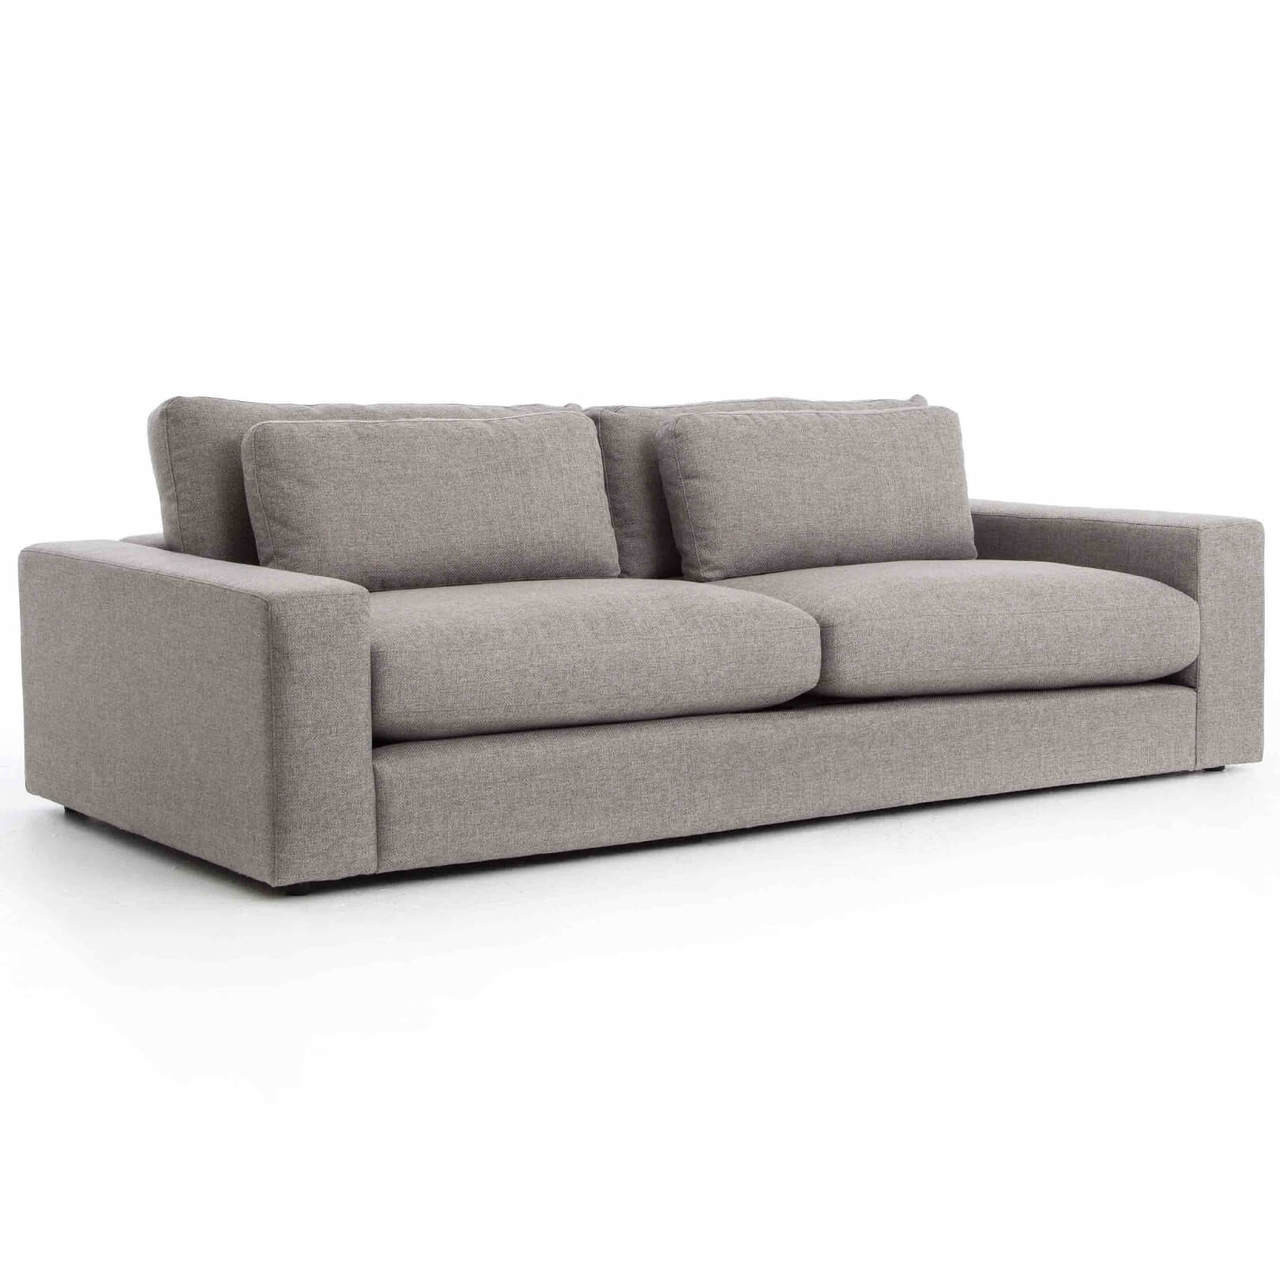 Bloor Contemporary Gray Fabric Upholstered Sofa 98\